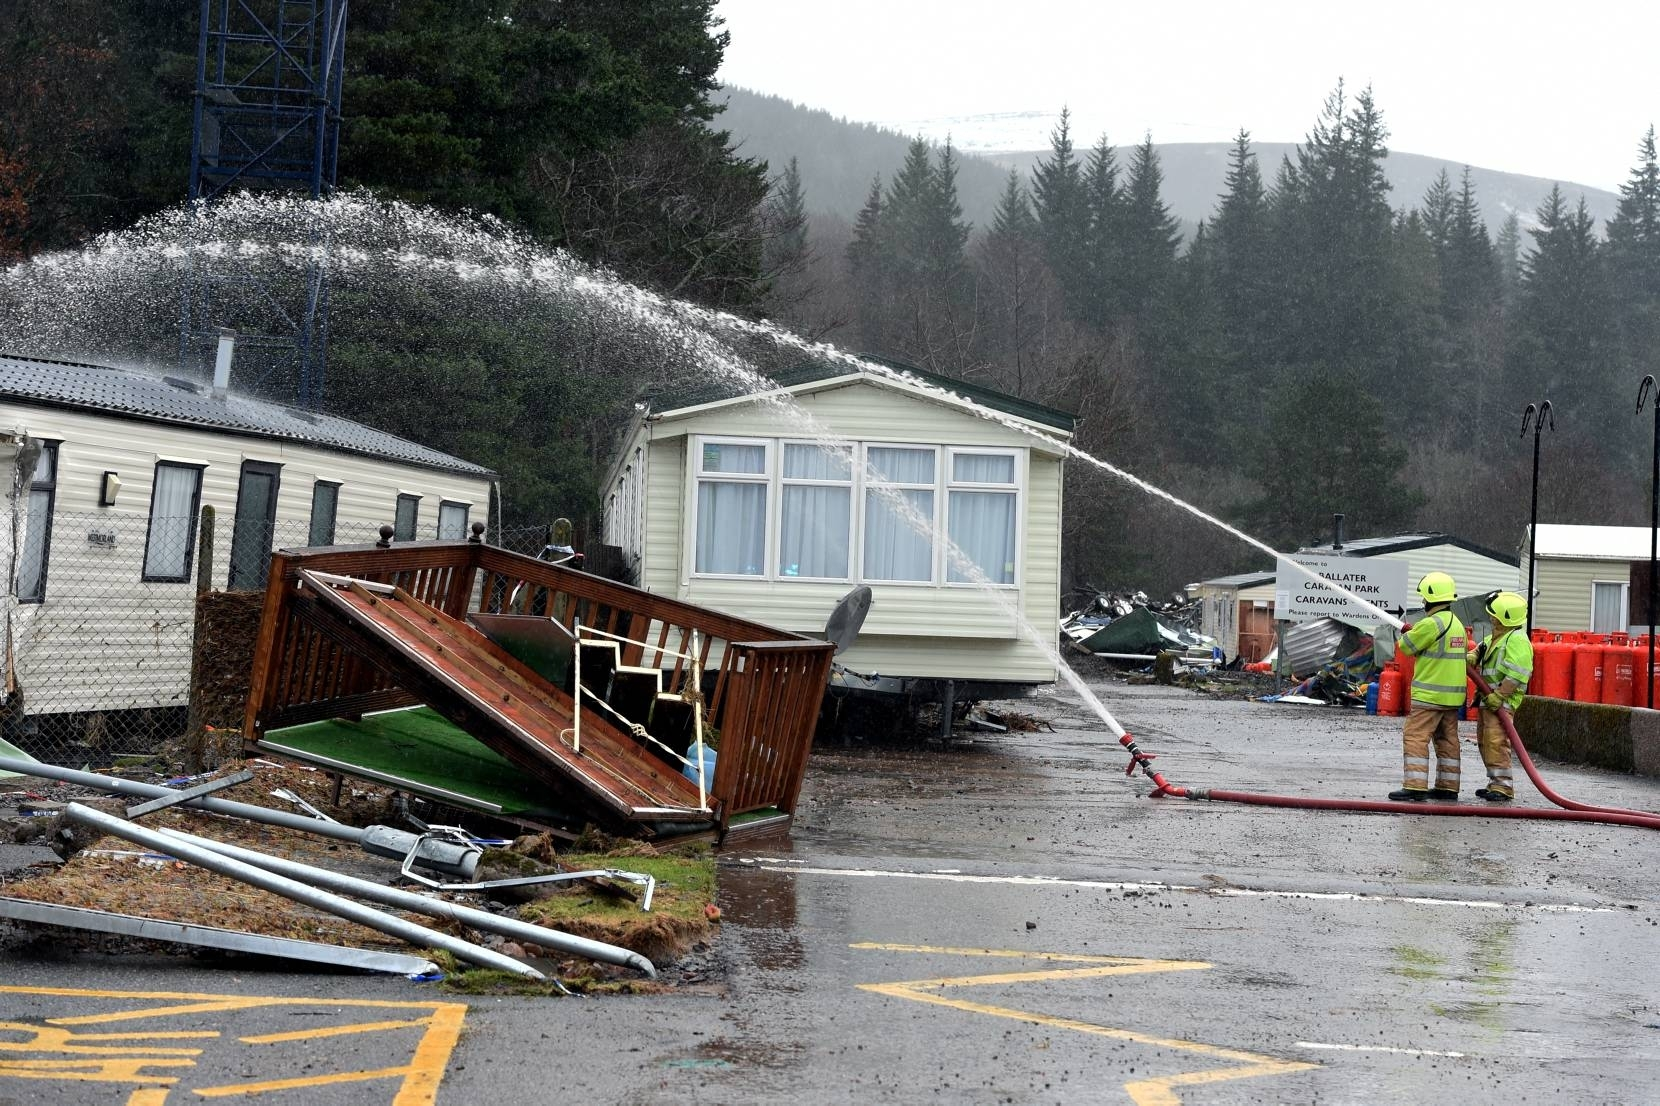 Flooding in Ballater. Fire fighters try to unblock the drains at the caravan park. Picture by Jim Irvine